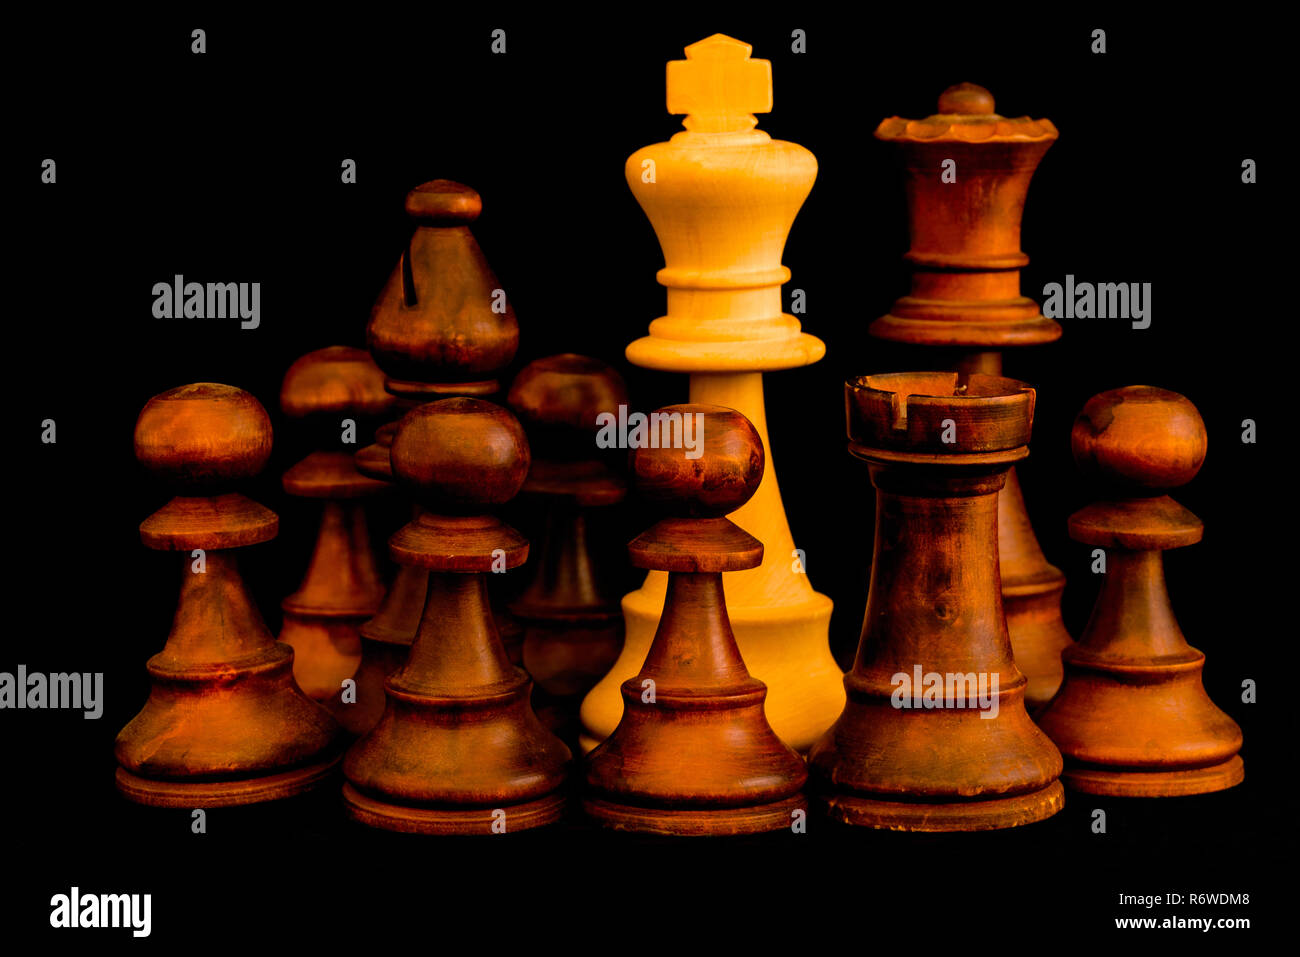 Under siege. White King beset by black enemies with sense of no escape, standard chess wooden piece on black background - Stock Image